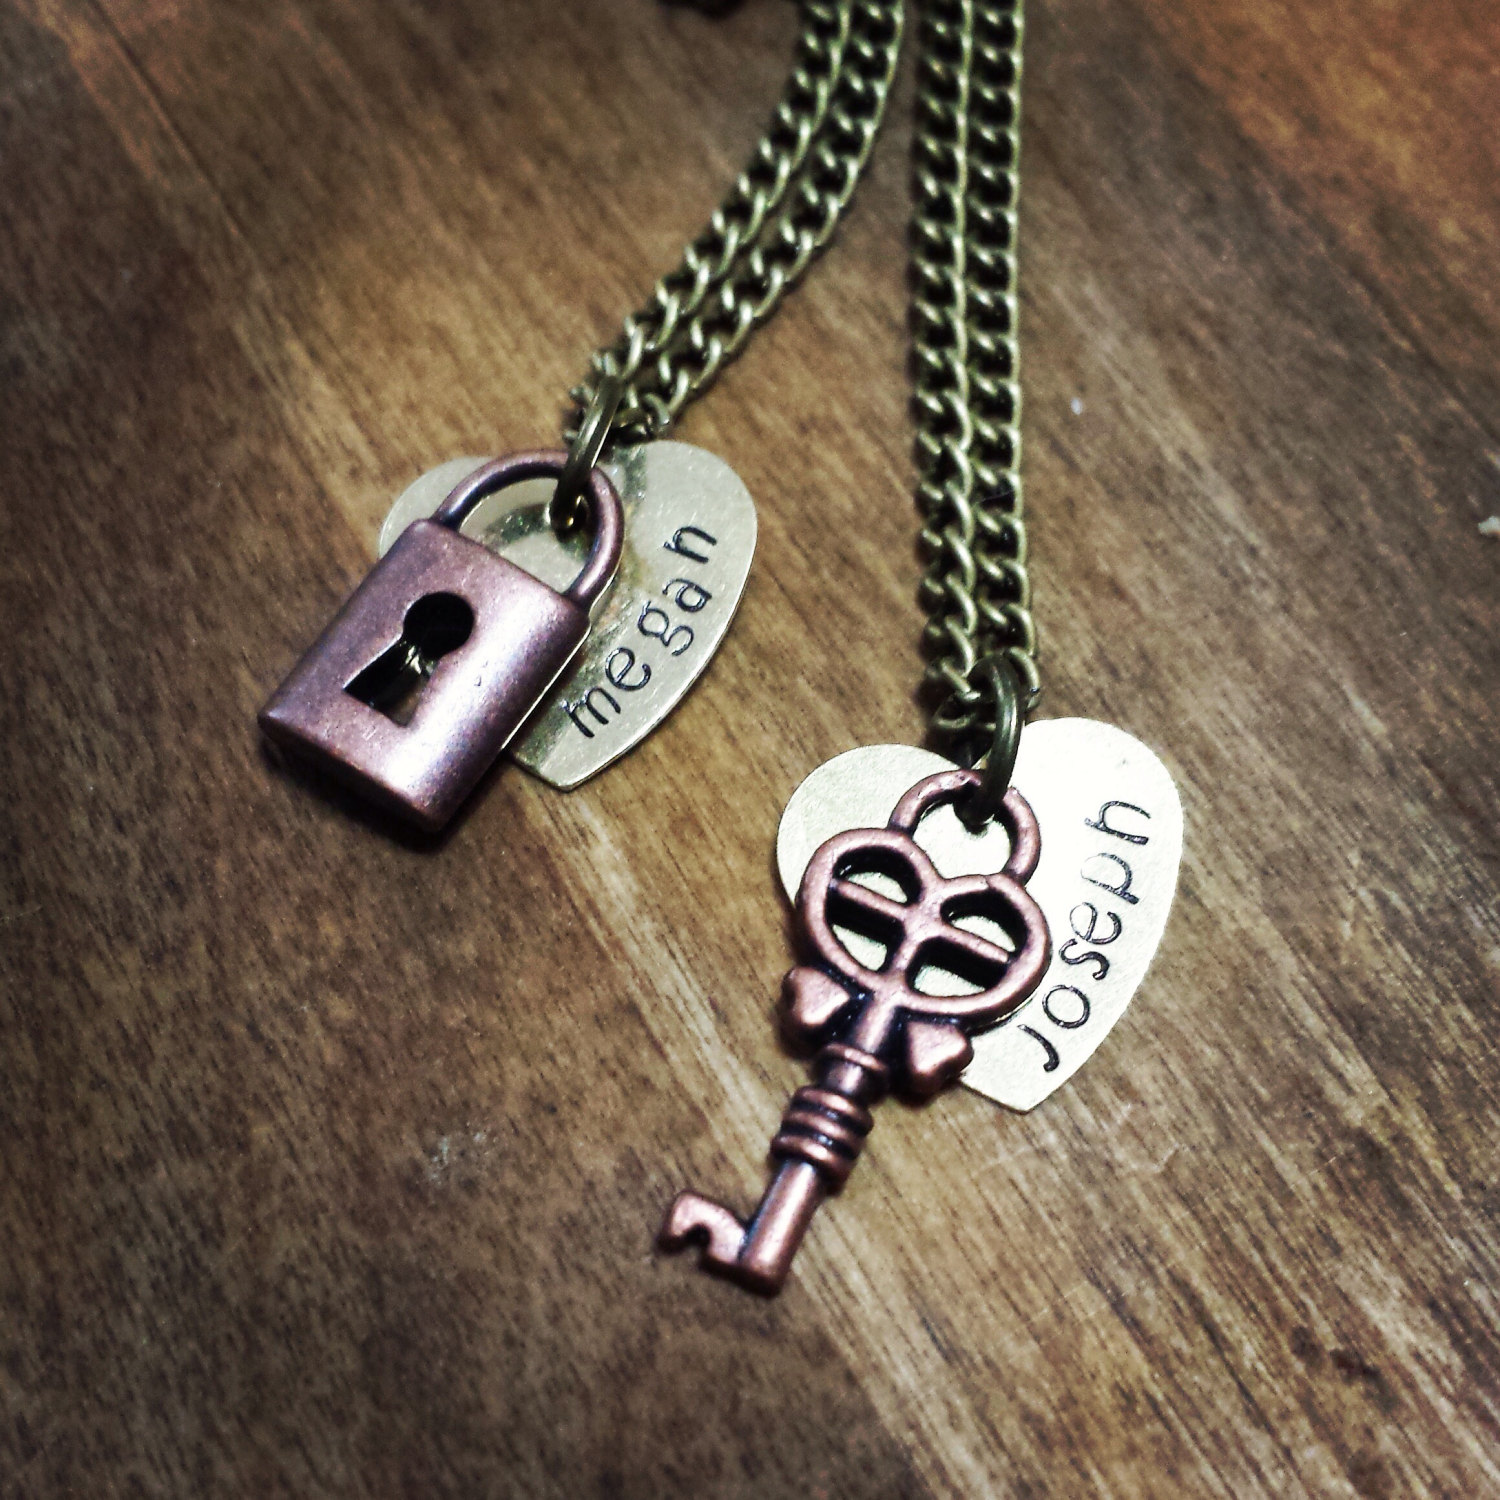 70e018e1e9 Personalized Couples Necklace Set - Lock and Key Necklace Set - Best ...